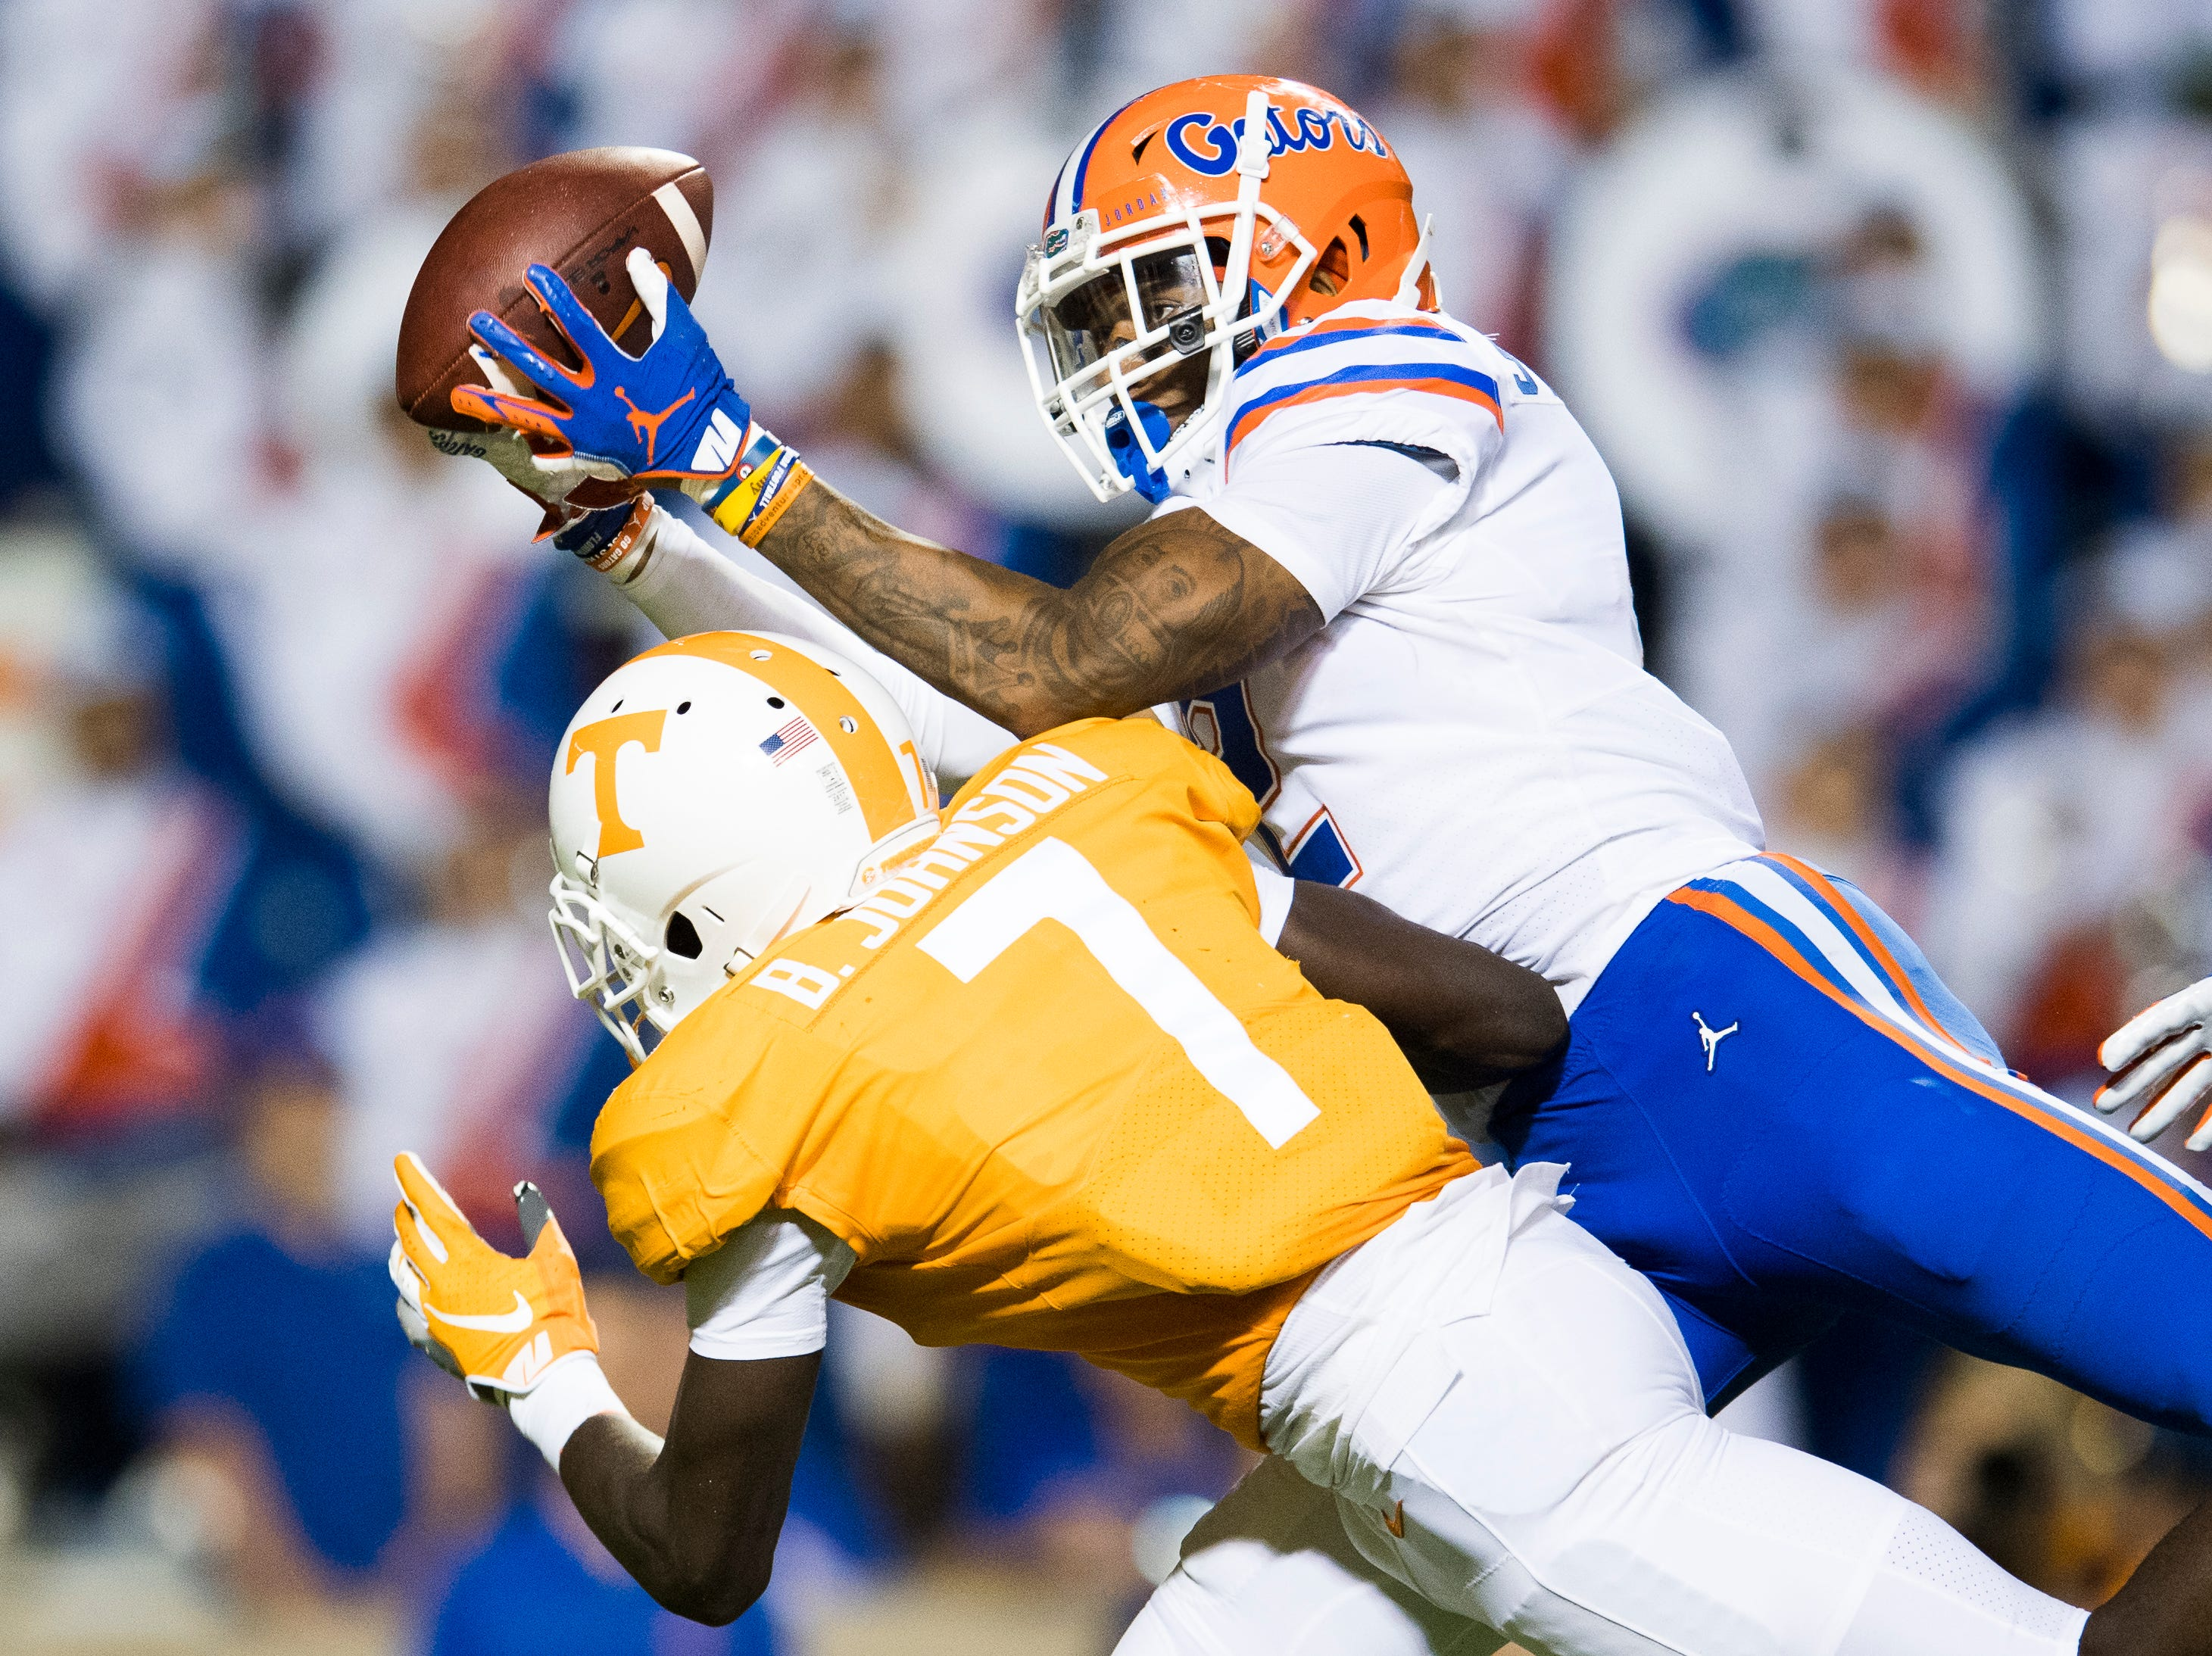 Florida defensive back Brad Stewart, Jr. (2) intercepts a pass intended for Tennessee wide receiver Brandon Johnson (7) during a game between Tennessee and Florida at Neyland Stadium in Knoxville, Tennessee on Saturday, September 22, 2018.